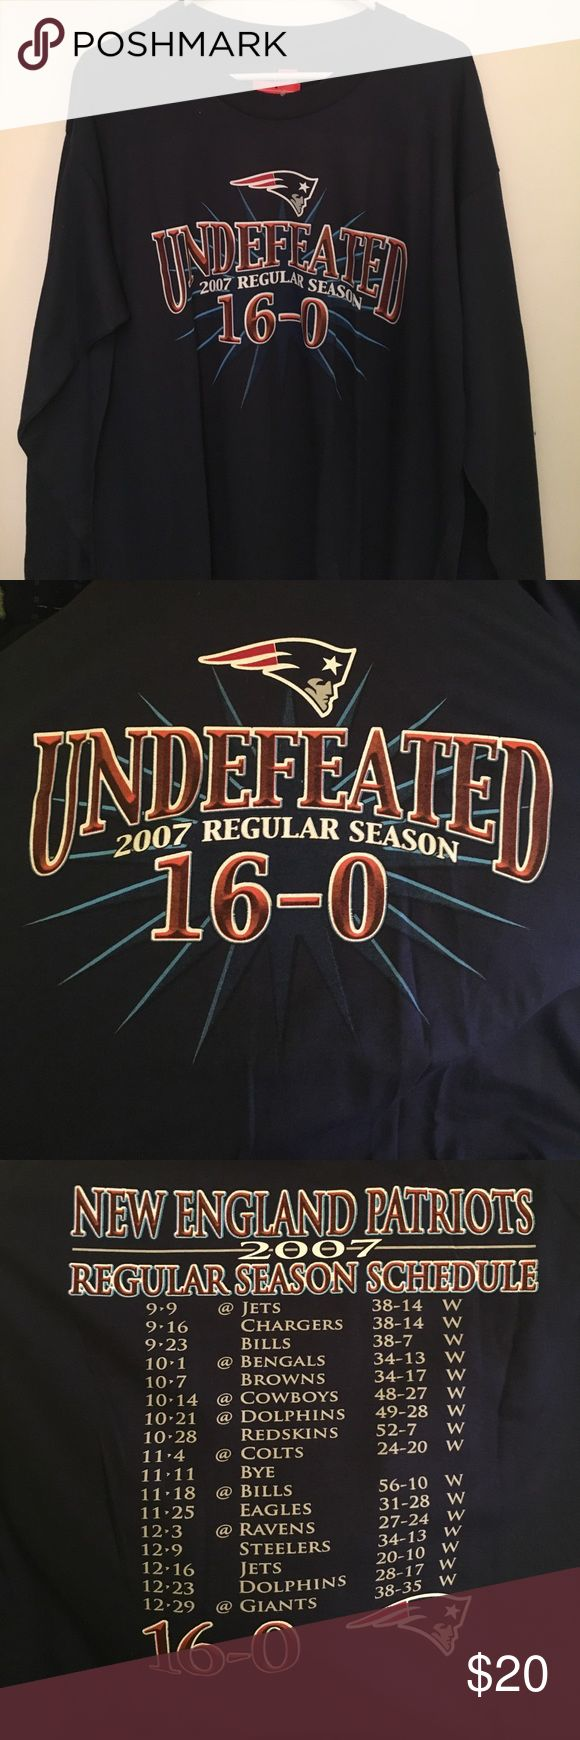 New England Patriots Undefeated Shirt! Calling all New England Patriots fans!! I have a BRAND NEW men's large Patriots Undefeated Season 2007 shirt! Never worn and still has the Bob's Stores and NFL Official tickets on it. How could we forget that 16-0 season?! NFL Shirts Tees - Long Sleeve